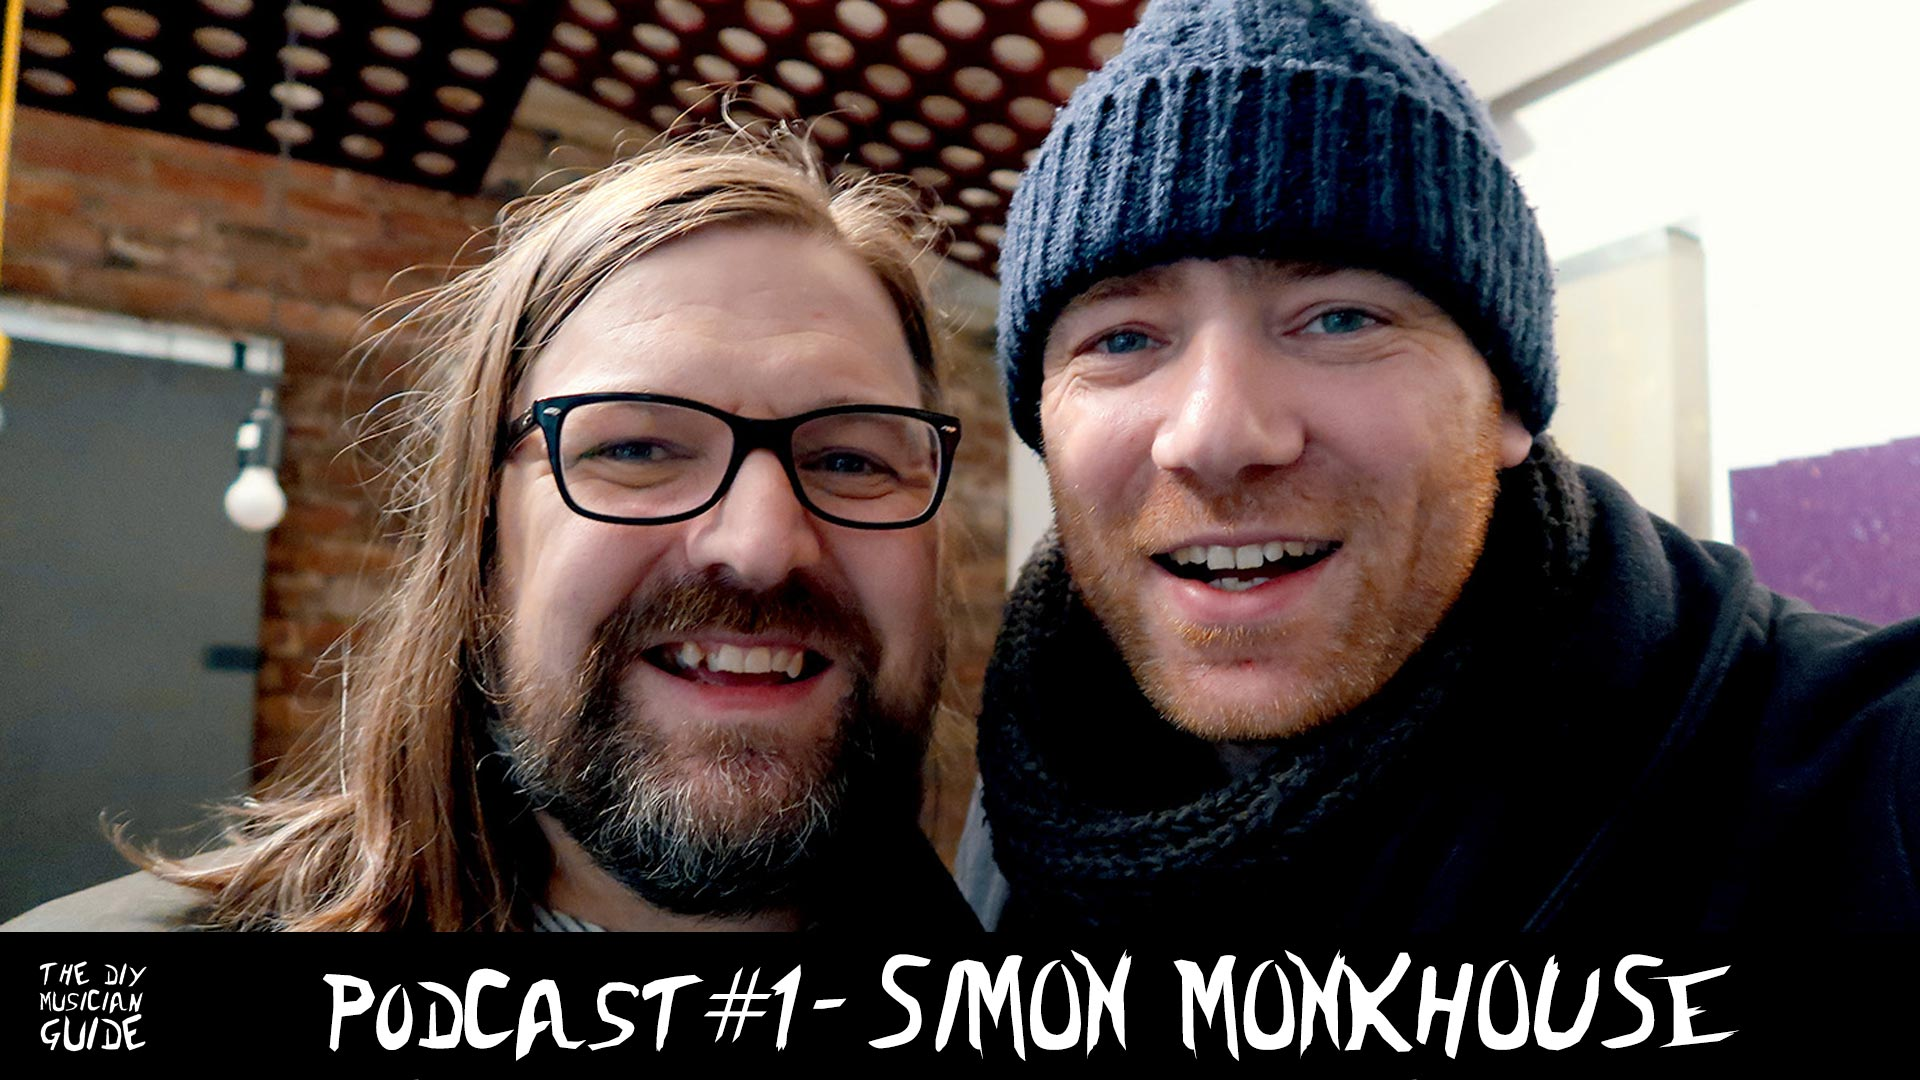 Simon Monkhouse | The DIY Musician Guide Podcast